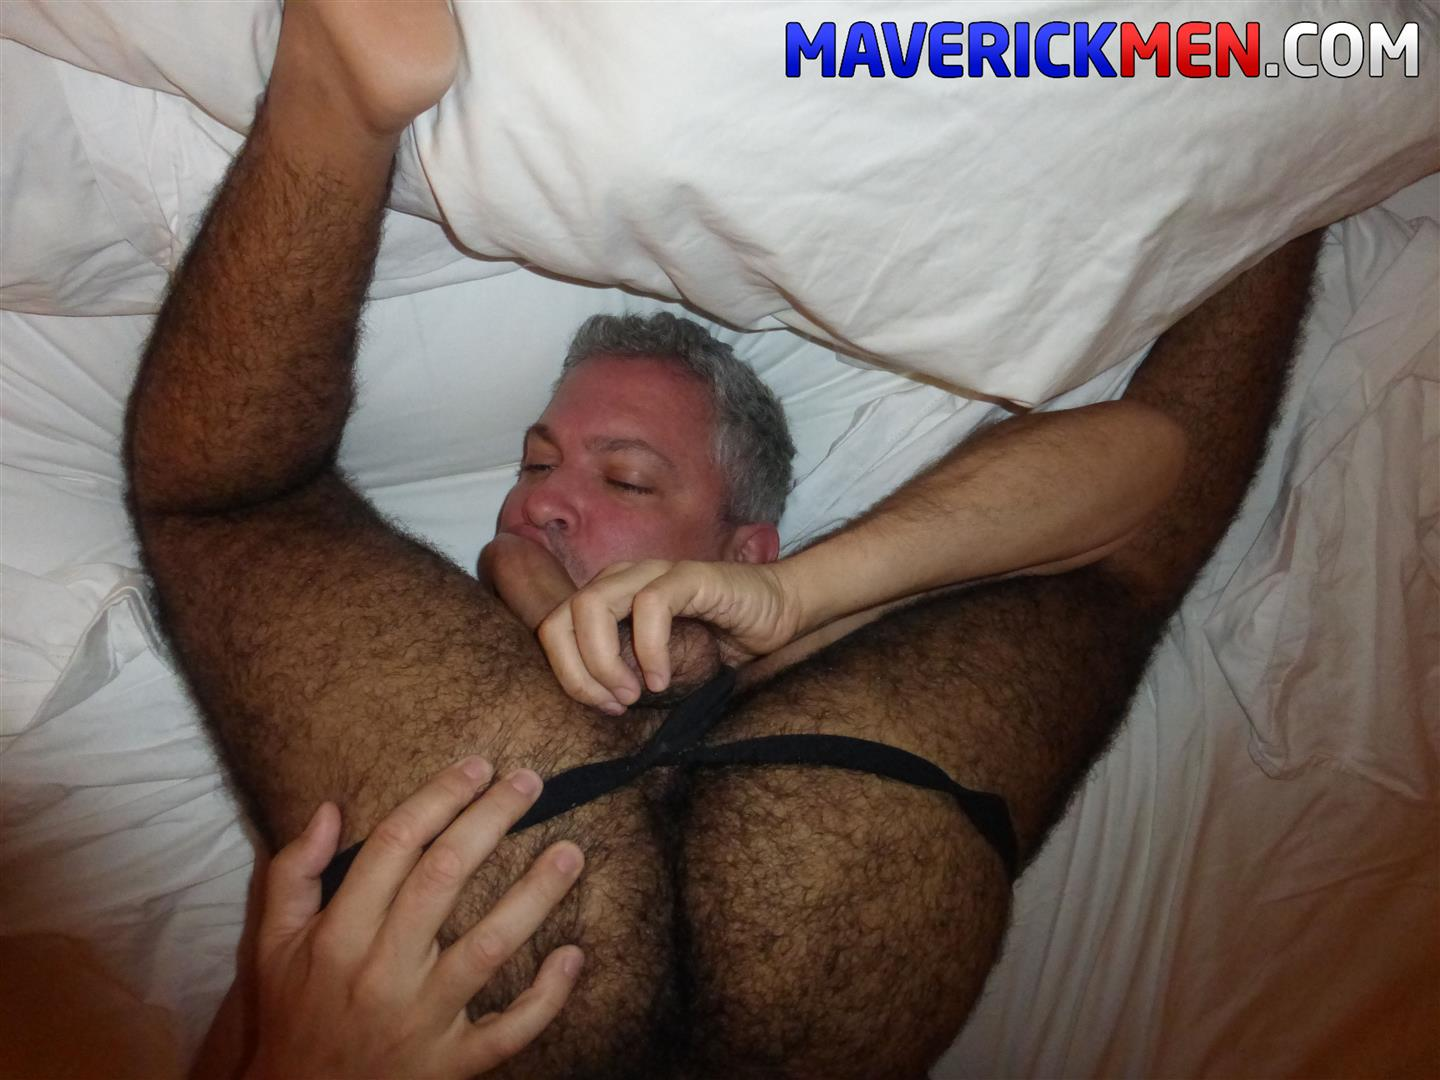 Maverick-Men-Little-Wolf-Hairy-Ass-Guy-With-A-Big-Uncut-Cock-Bareback-Amateur-Gay-Porn-08 Breeding A Young Guy With A Hairy Ass And A Big Uncut Cock